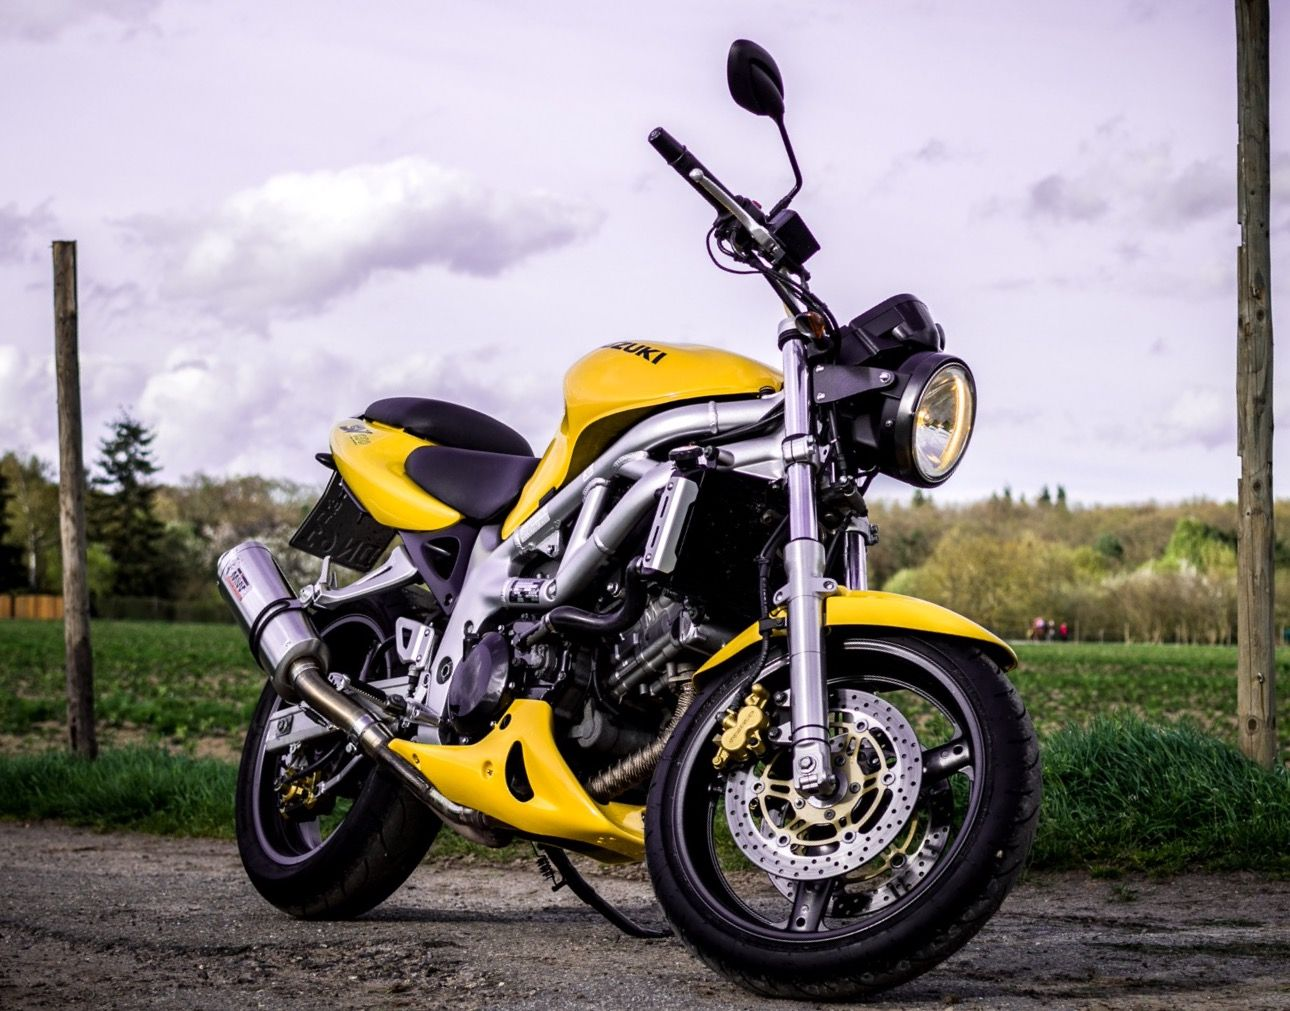 2001 suzuki sv 650 n av tuning dirty rat knubbel. Black Bedroom Furniture Sets. Home Design Ideas